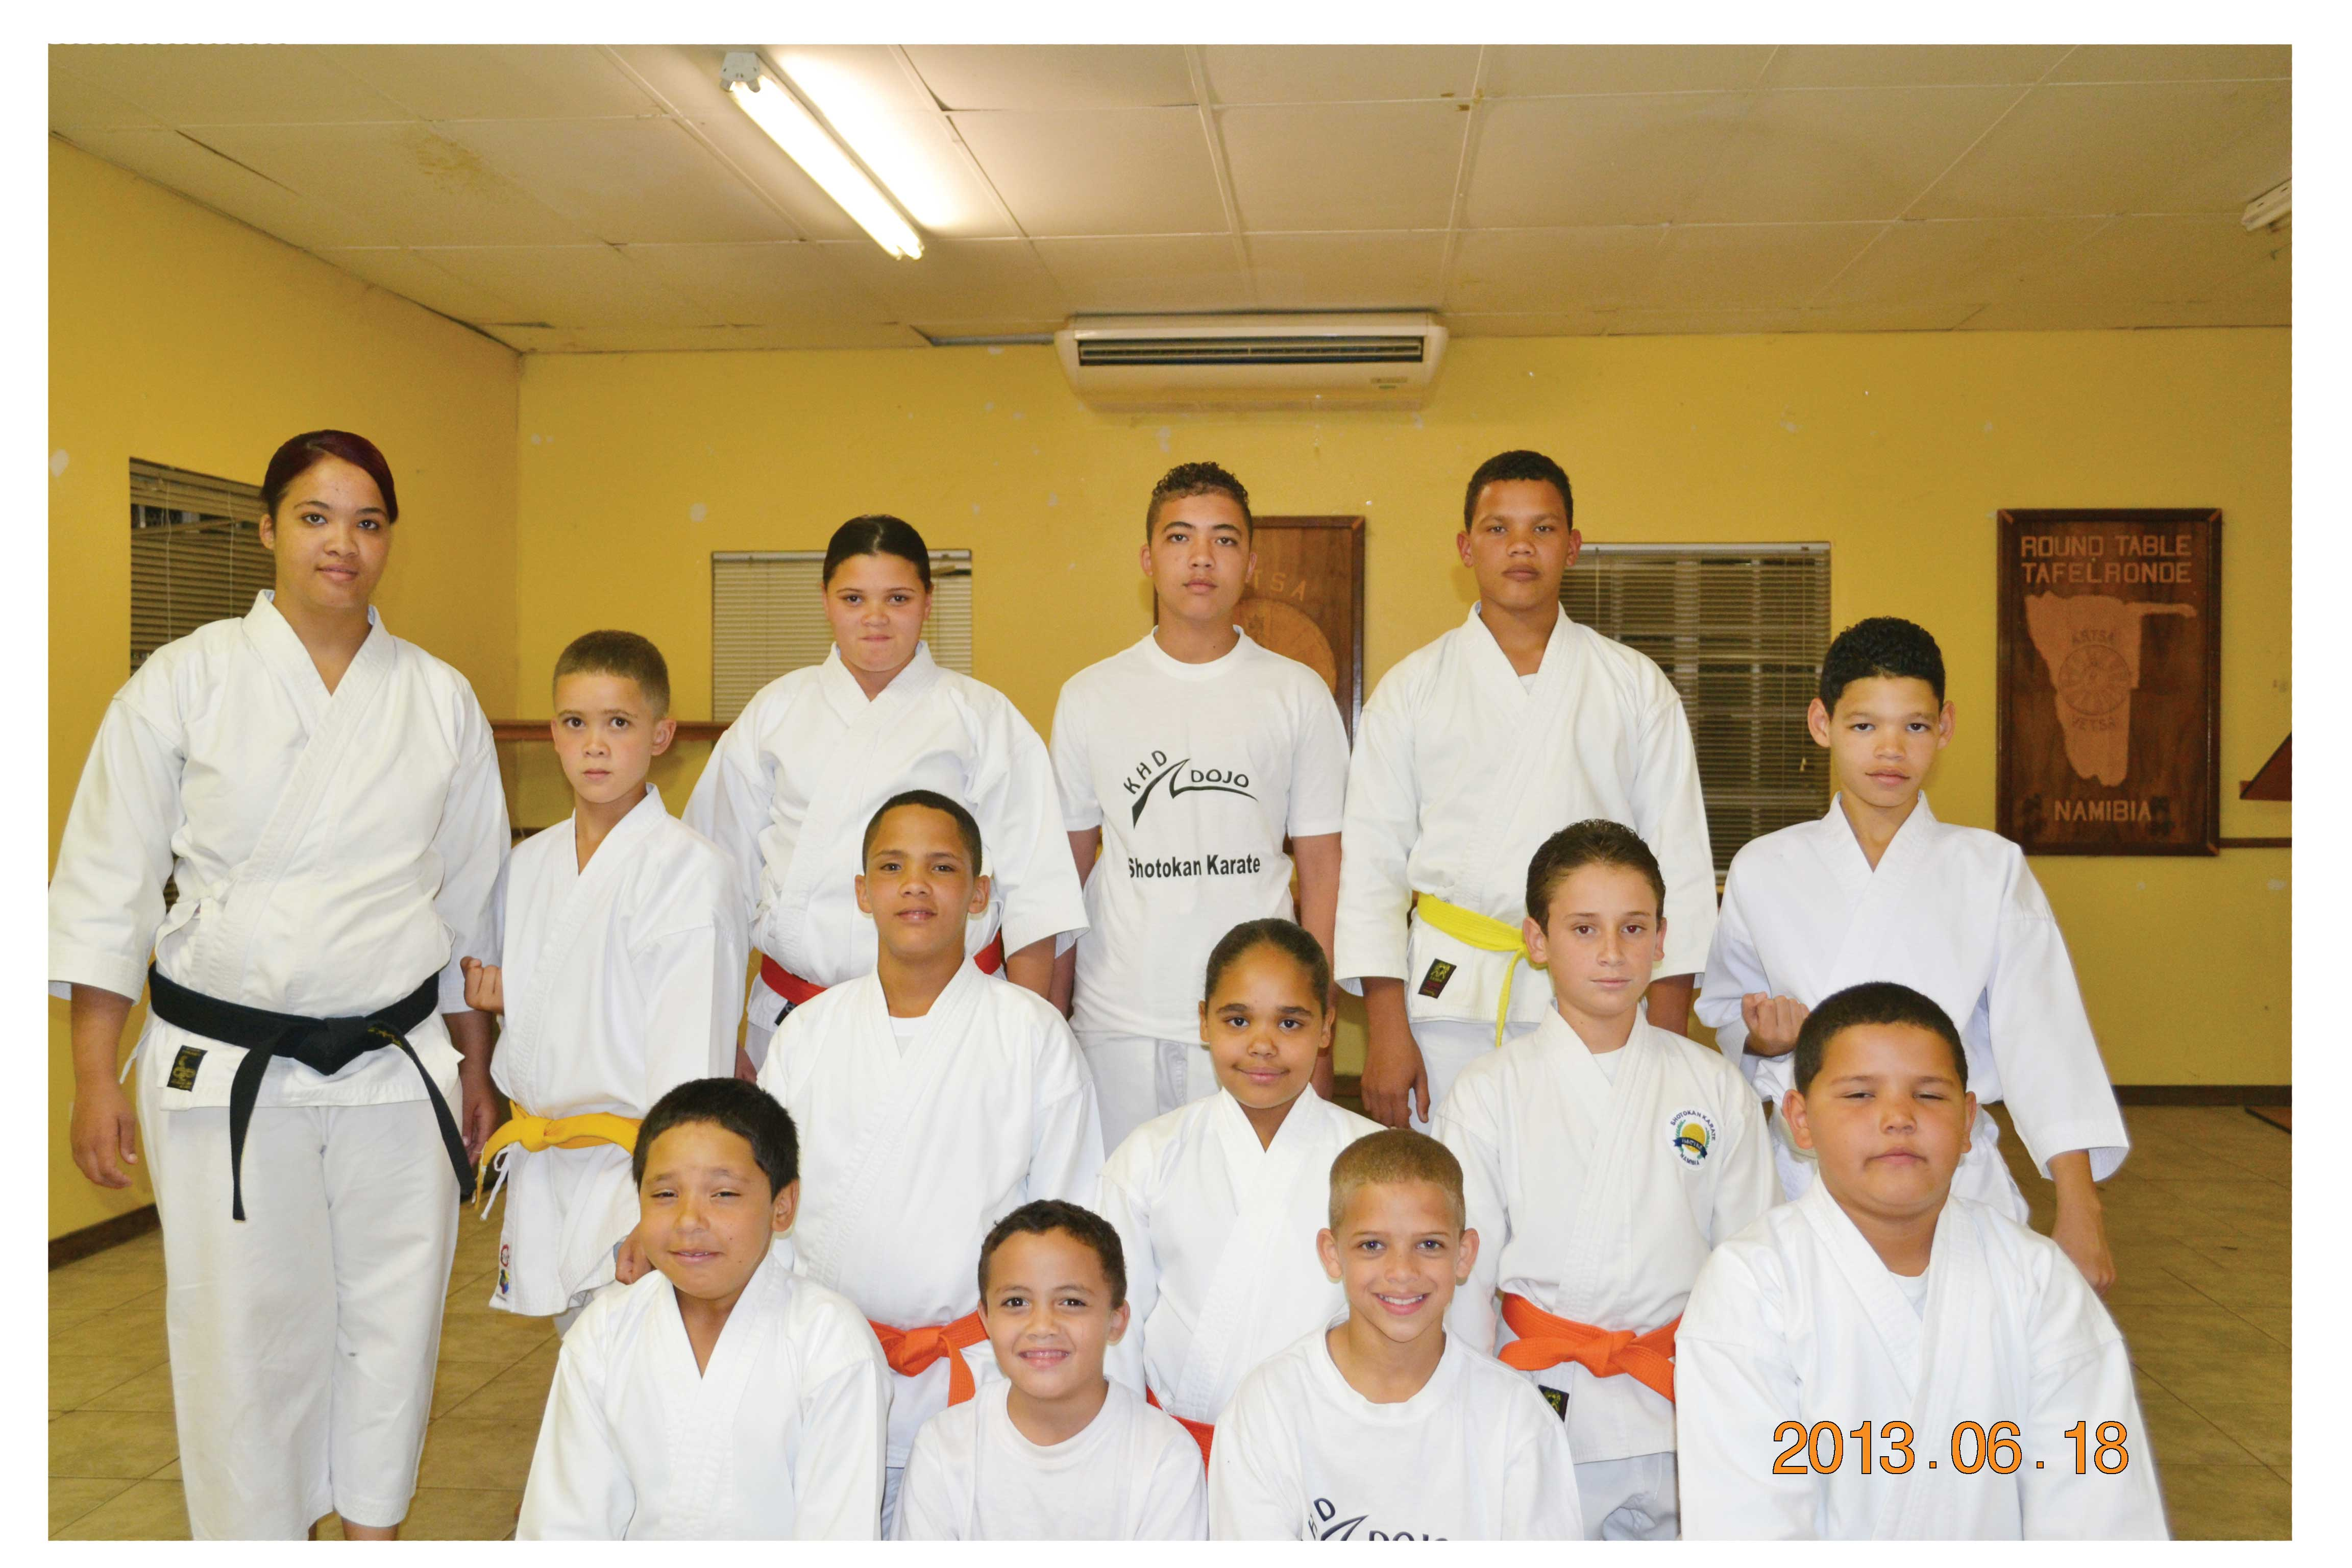 Sensei of the Khomasdal Shotokan Dojo, Morchen Kruger (on the left) with her assorted team of karateka that will travel to South Africa in August to participate in the Shotokan International Development Tournament